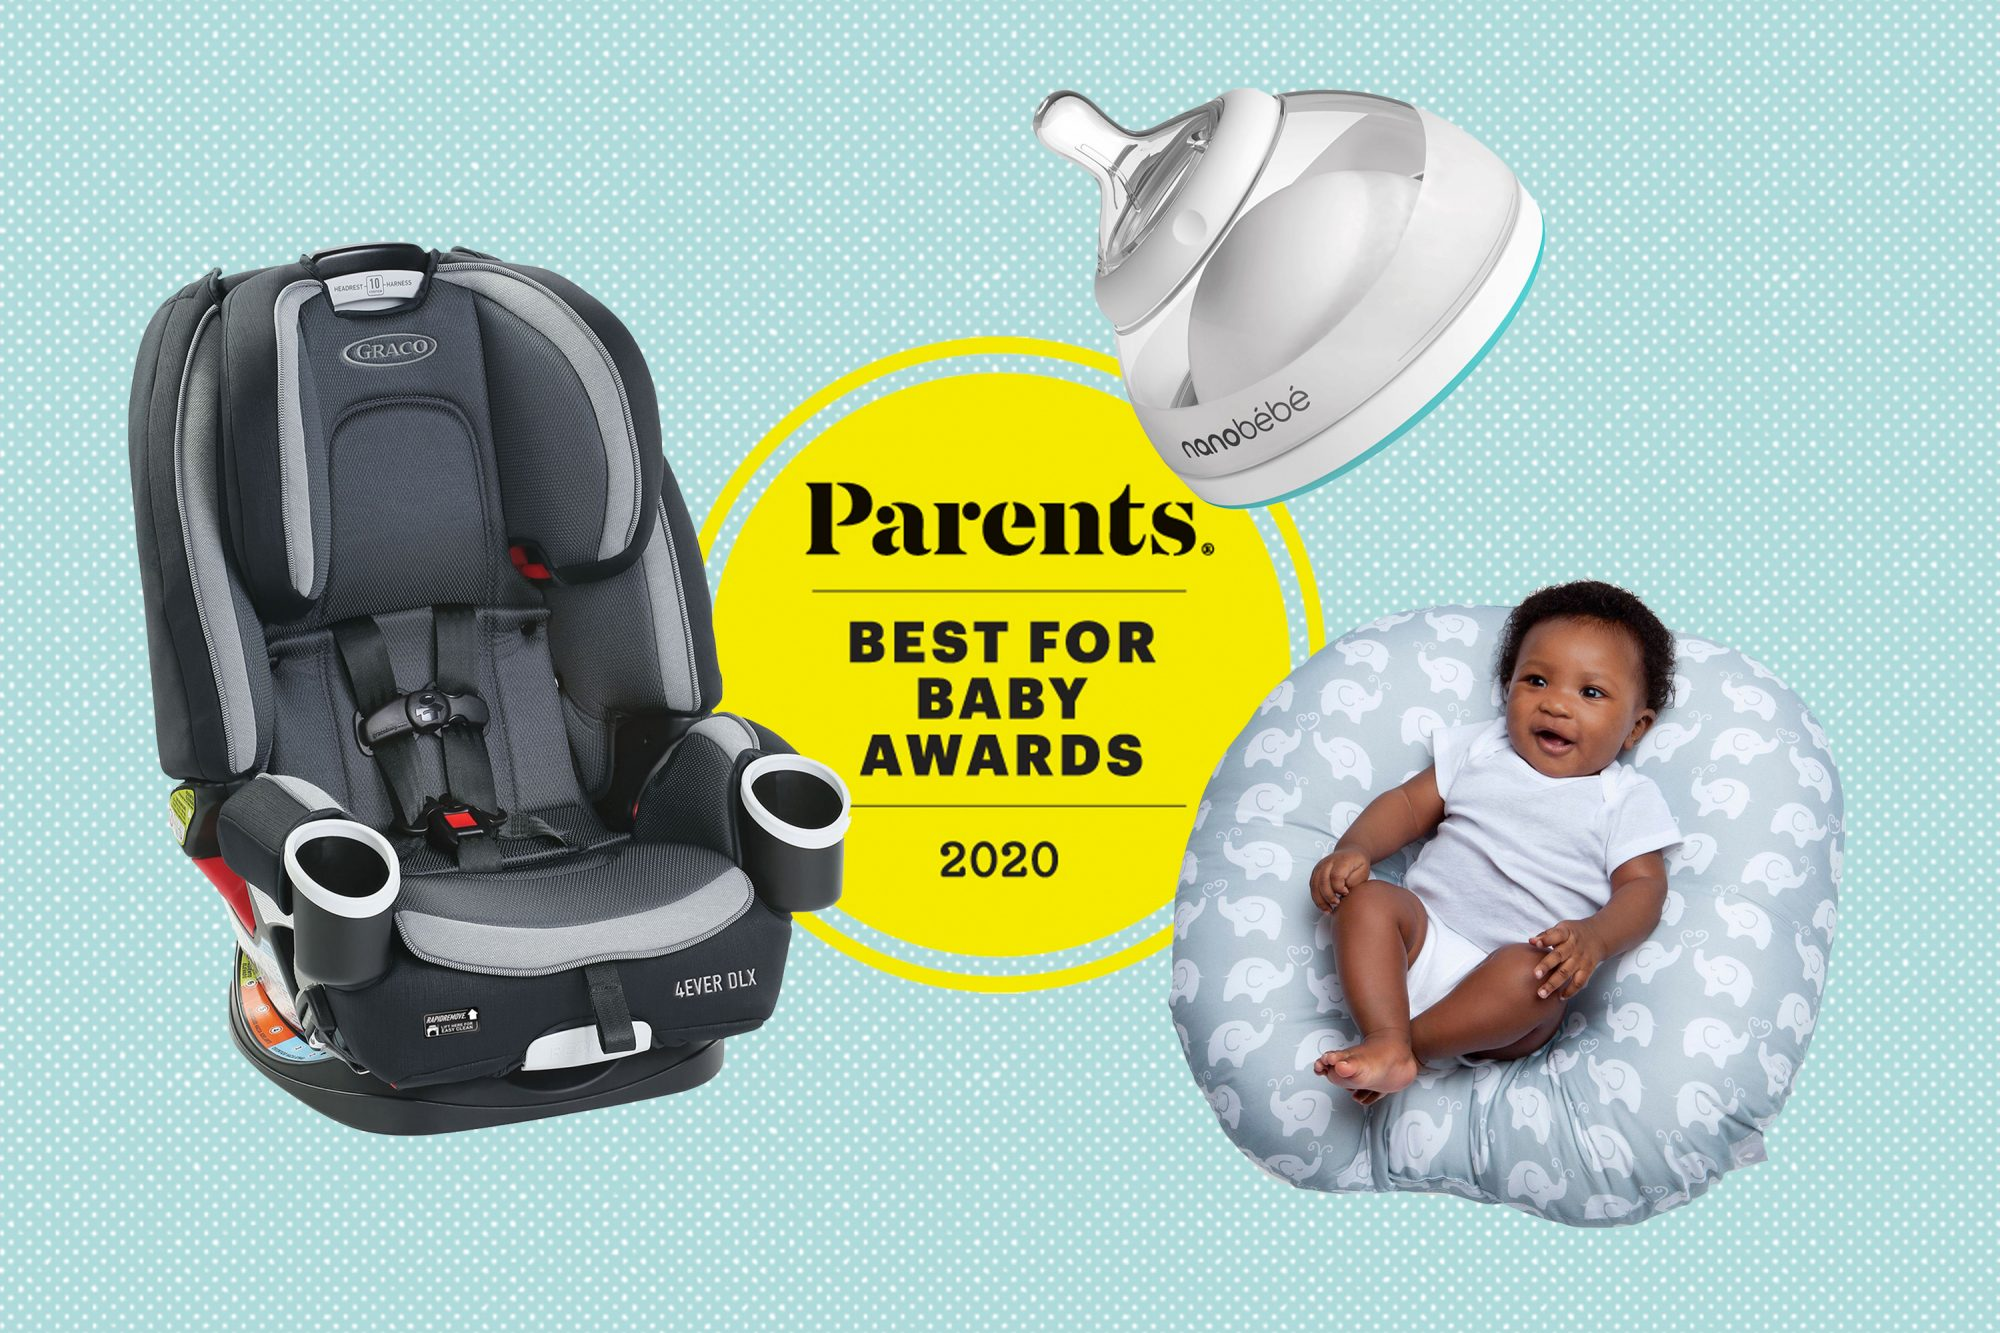 Graco carseat, nanobébé bottle nipple and boppy